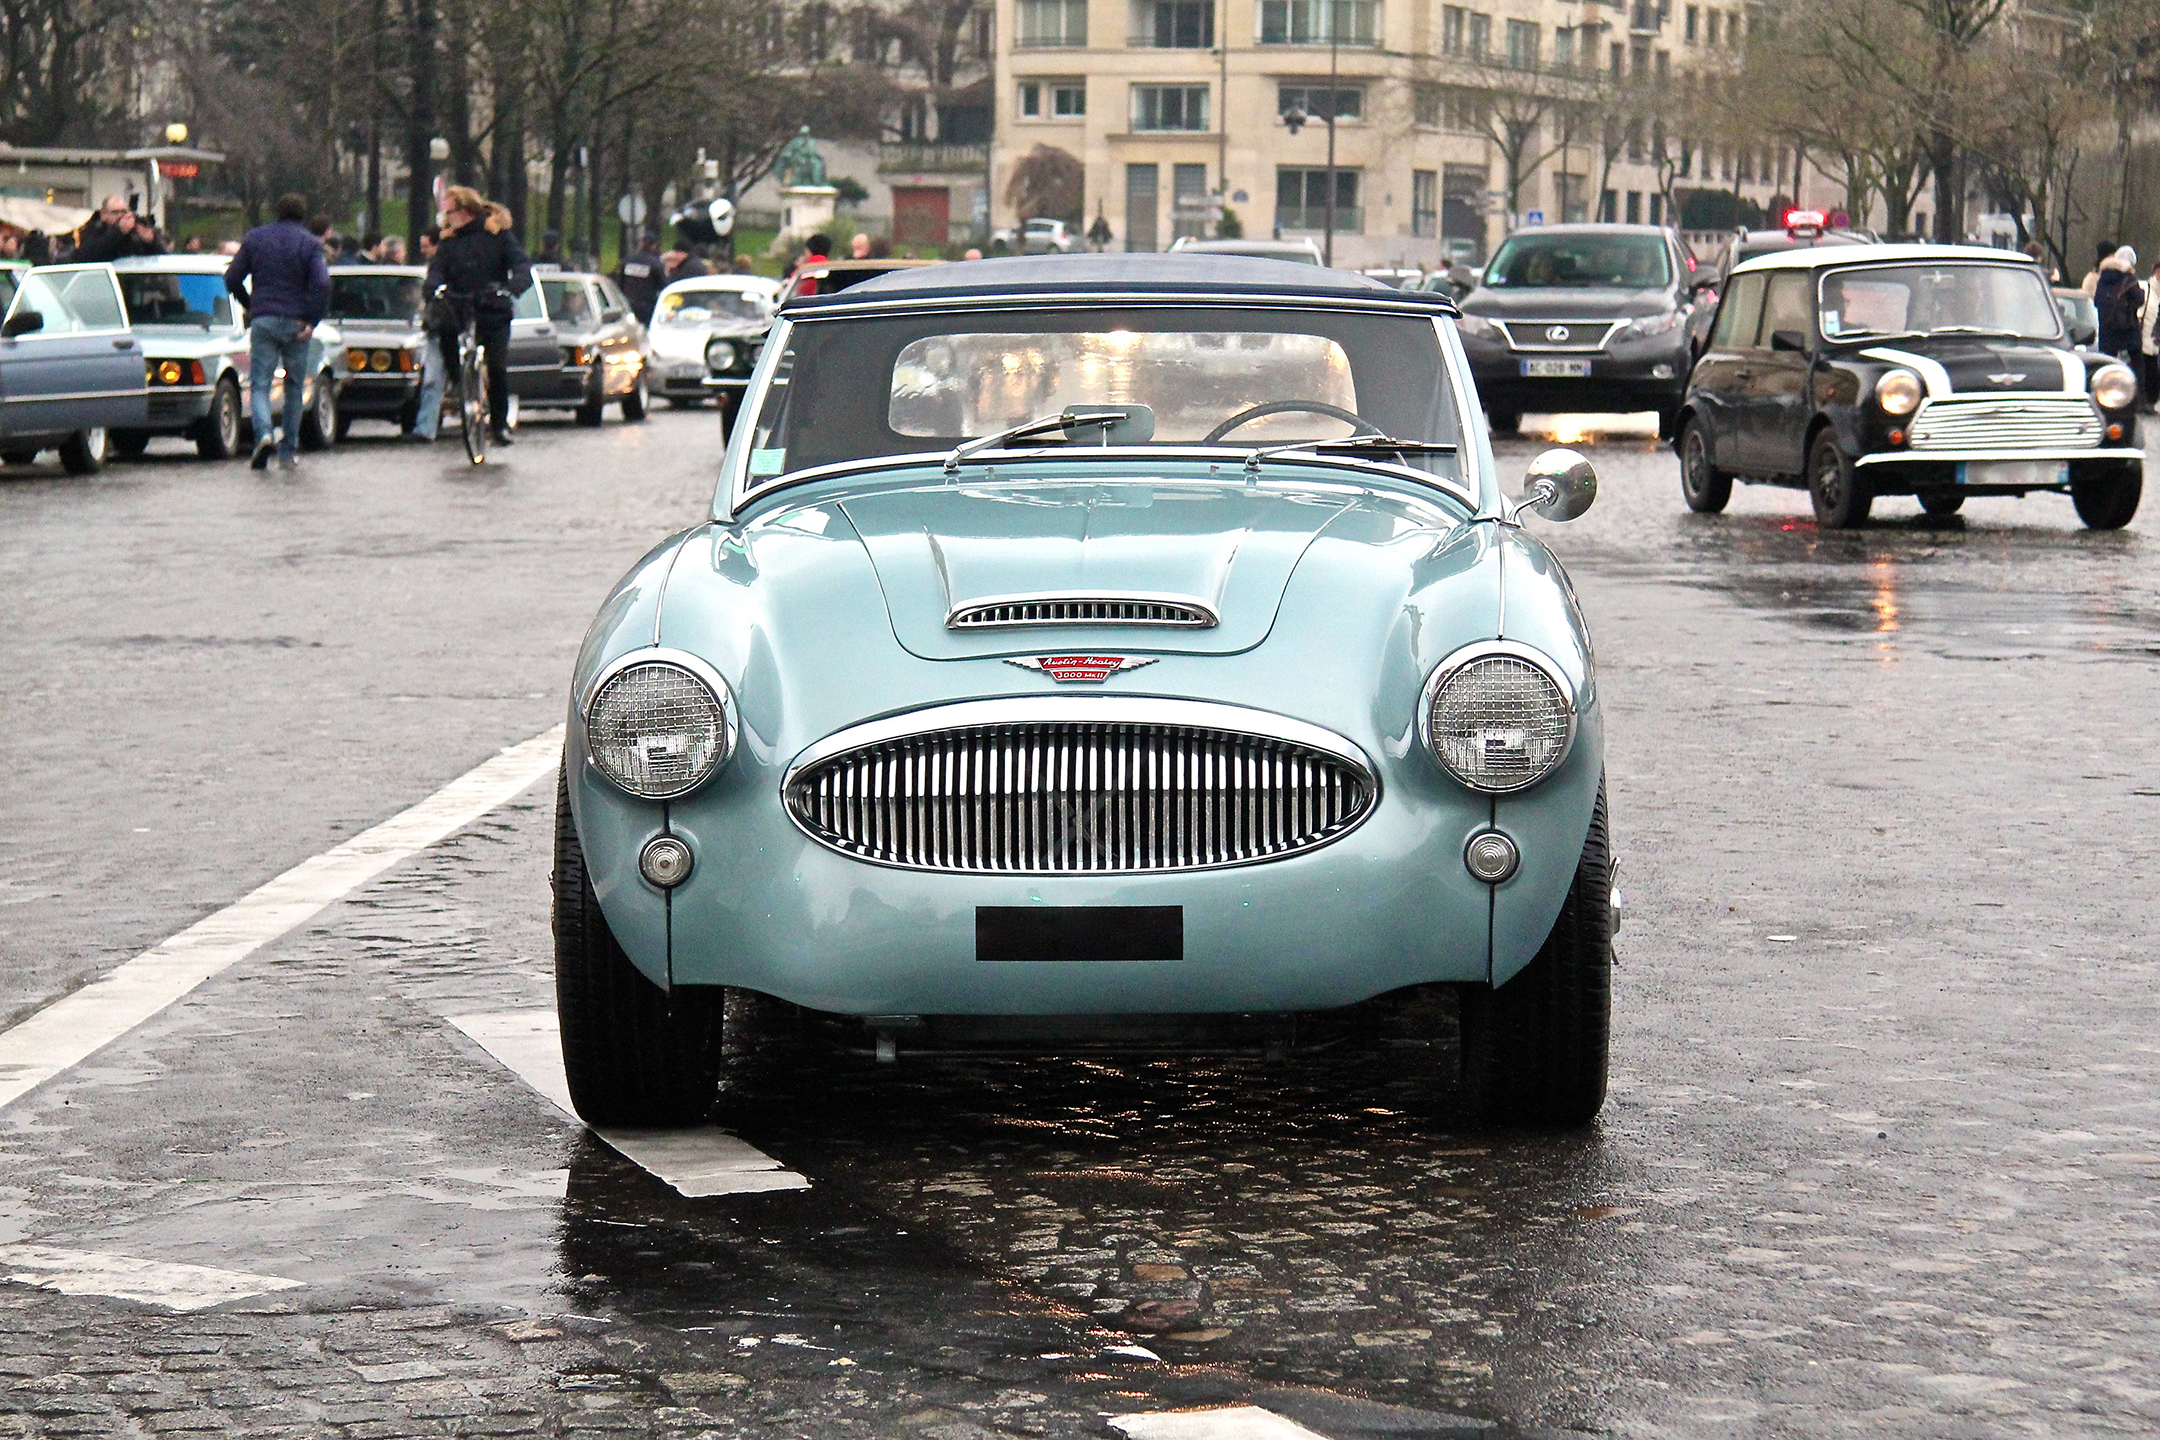 Austin Healey 3000 - Traversée de Paris Hivernale 2018 - photo Ludo Ferrari